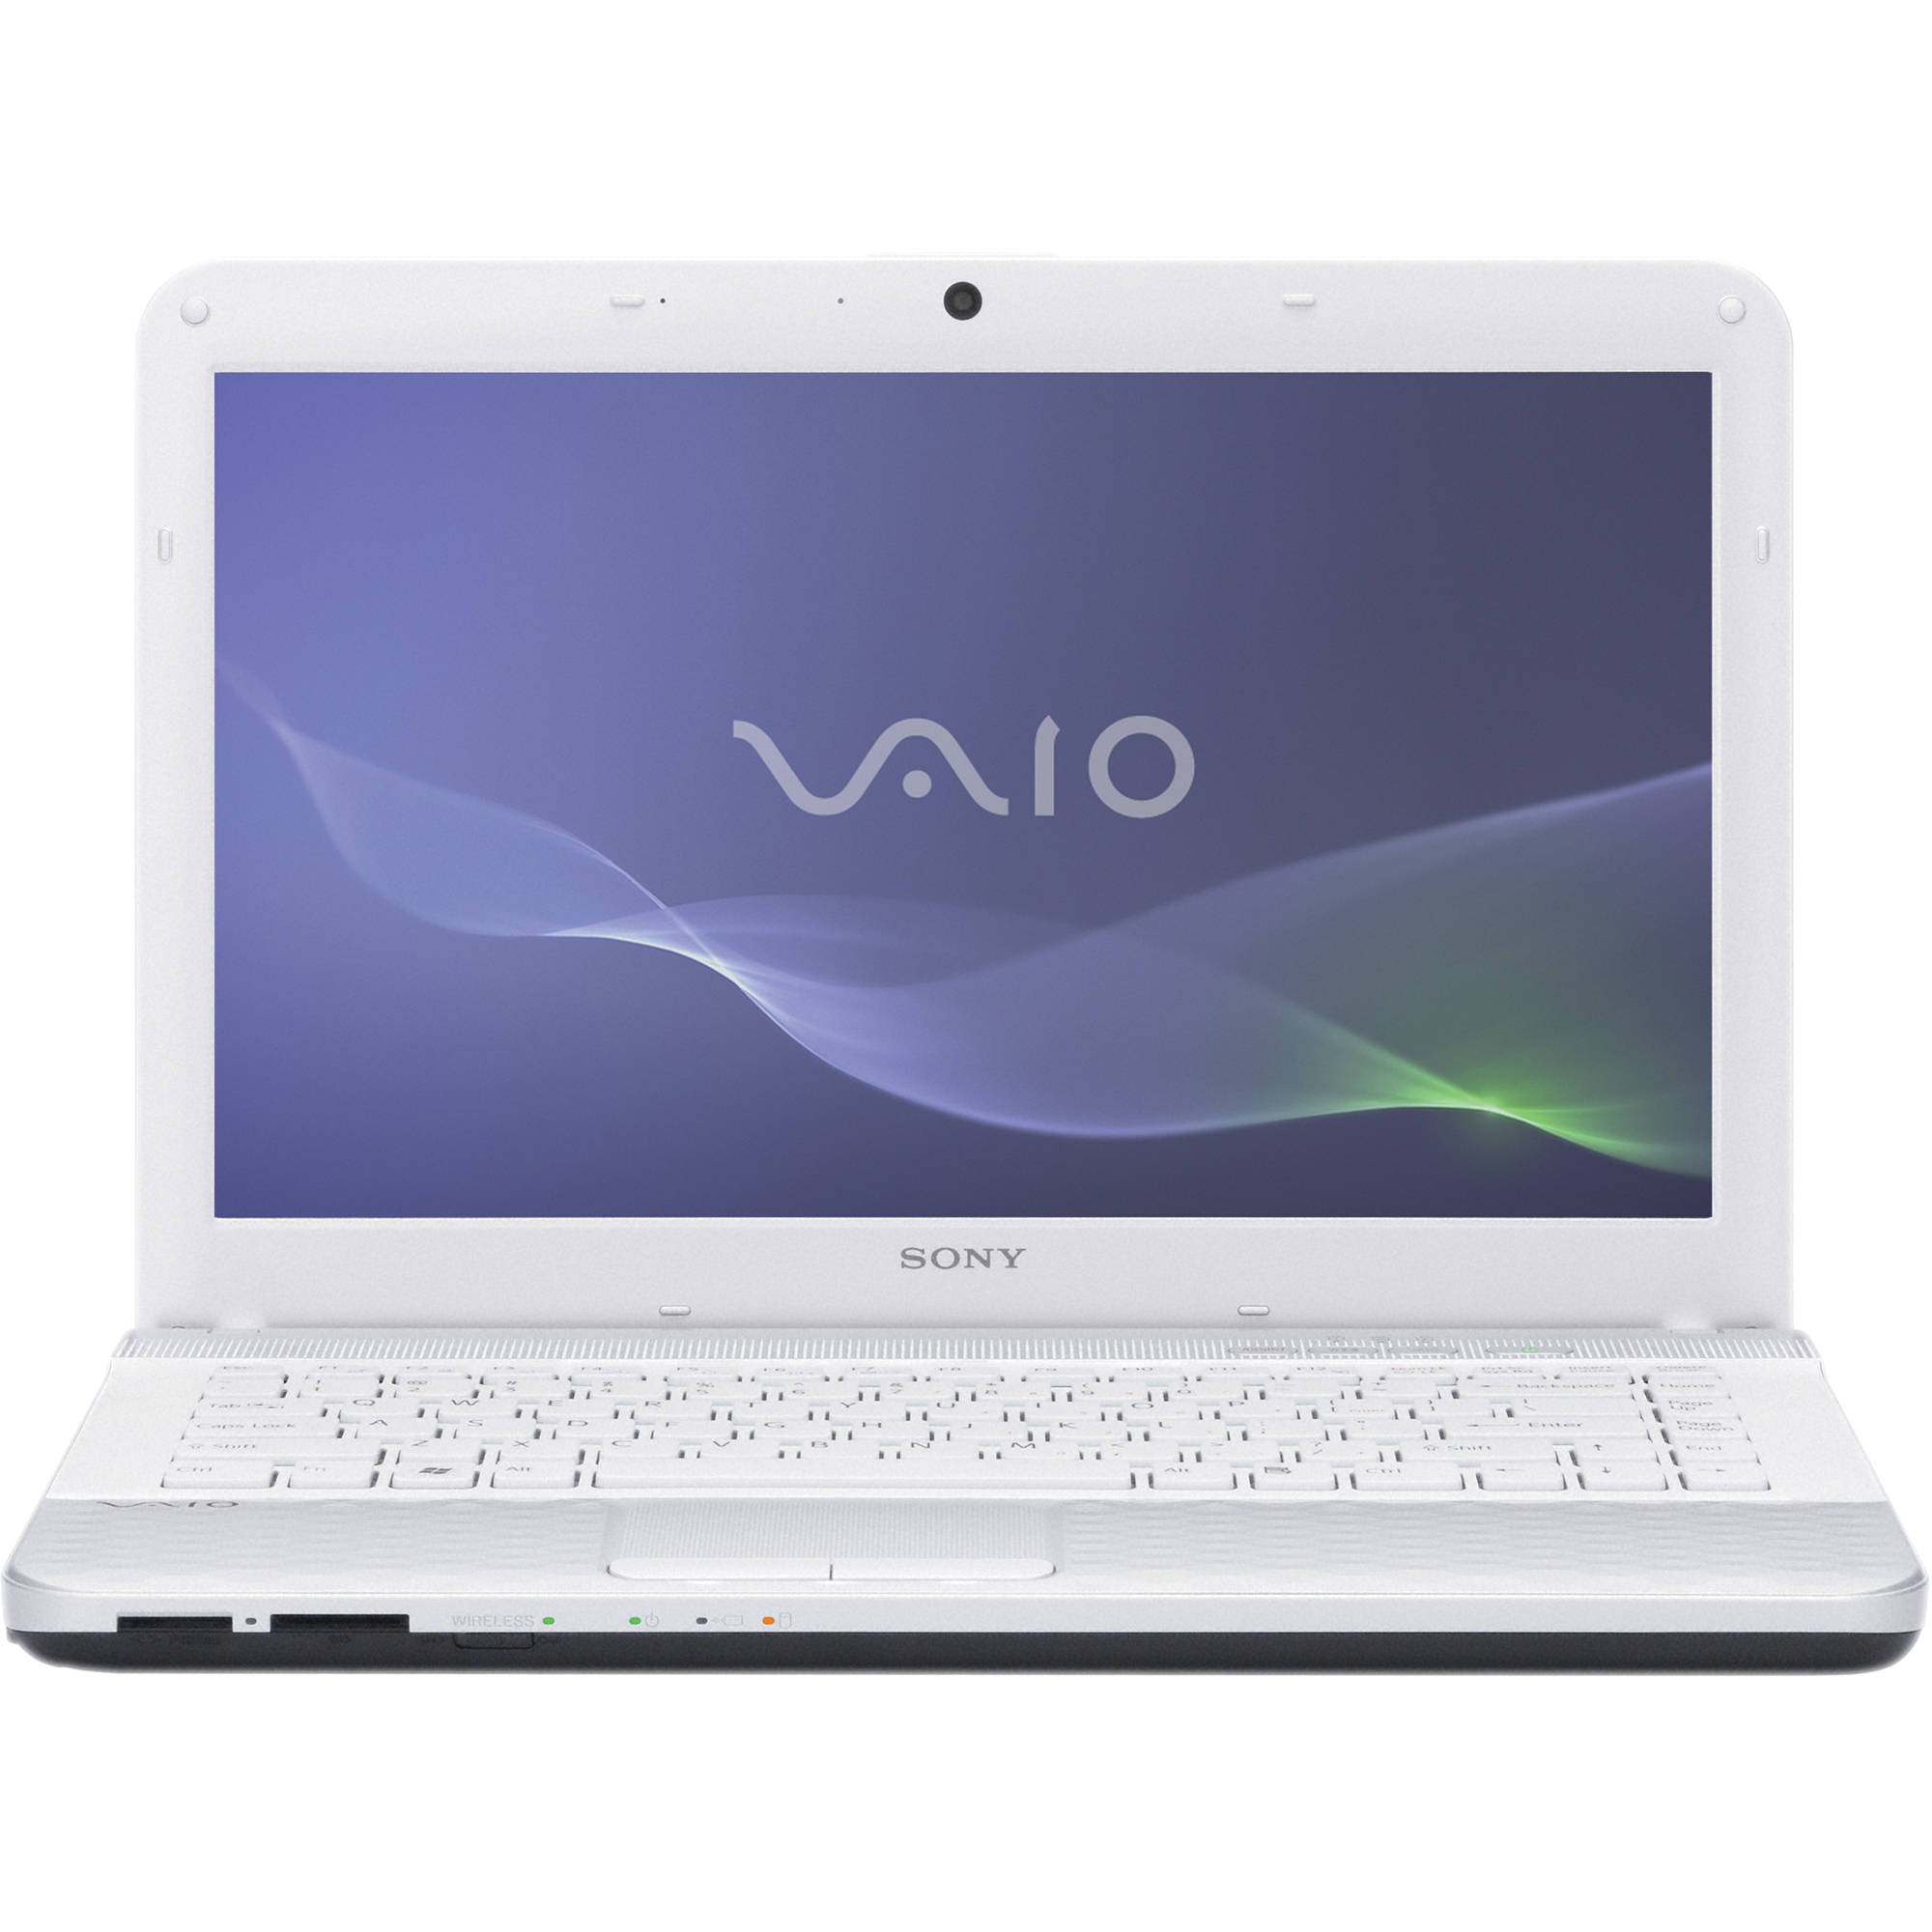 Sony Vaio VPCEG11FX Camera Driver for Windows Mac